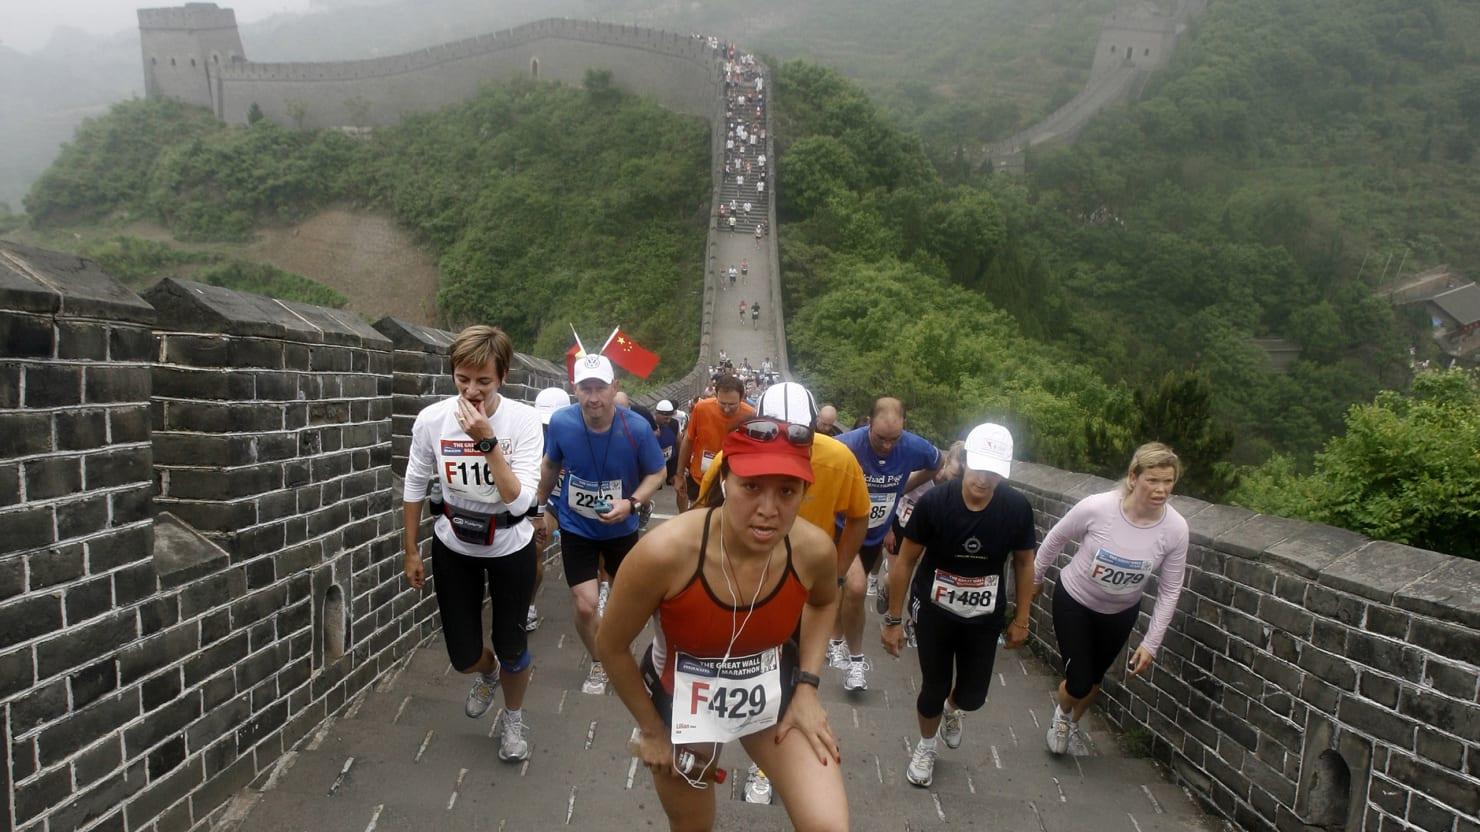 Extreme Races: 10 Mind-Blowing Marathons (Photos)